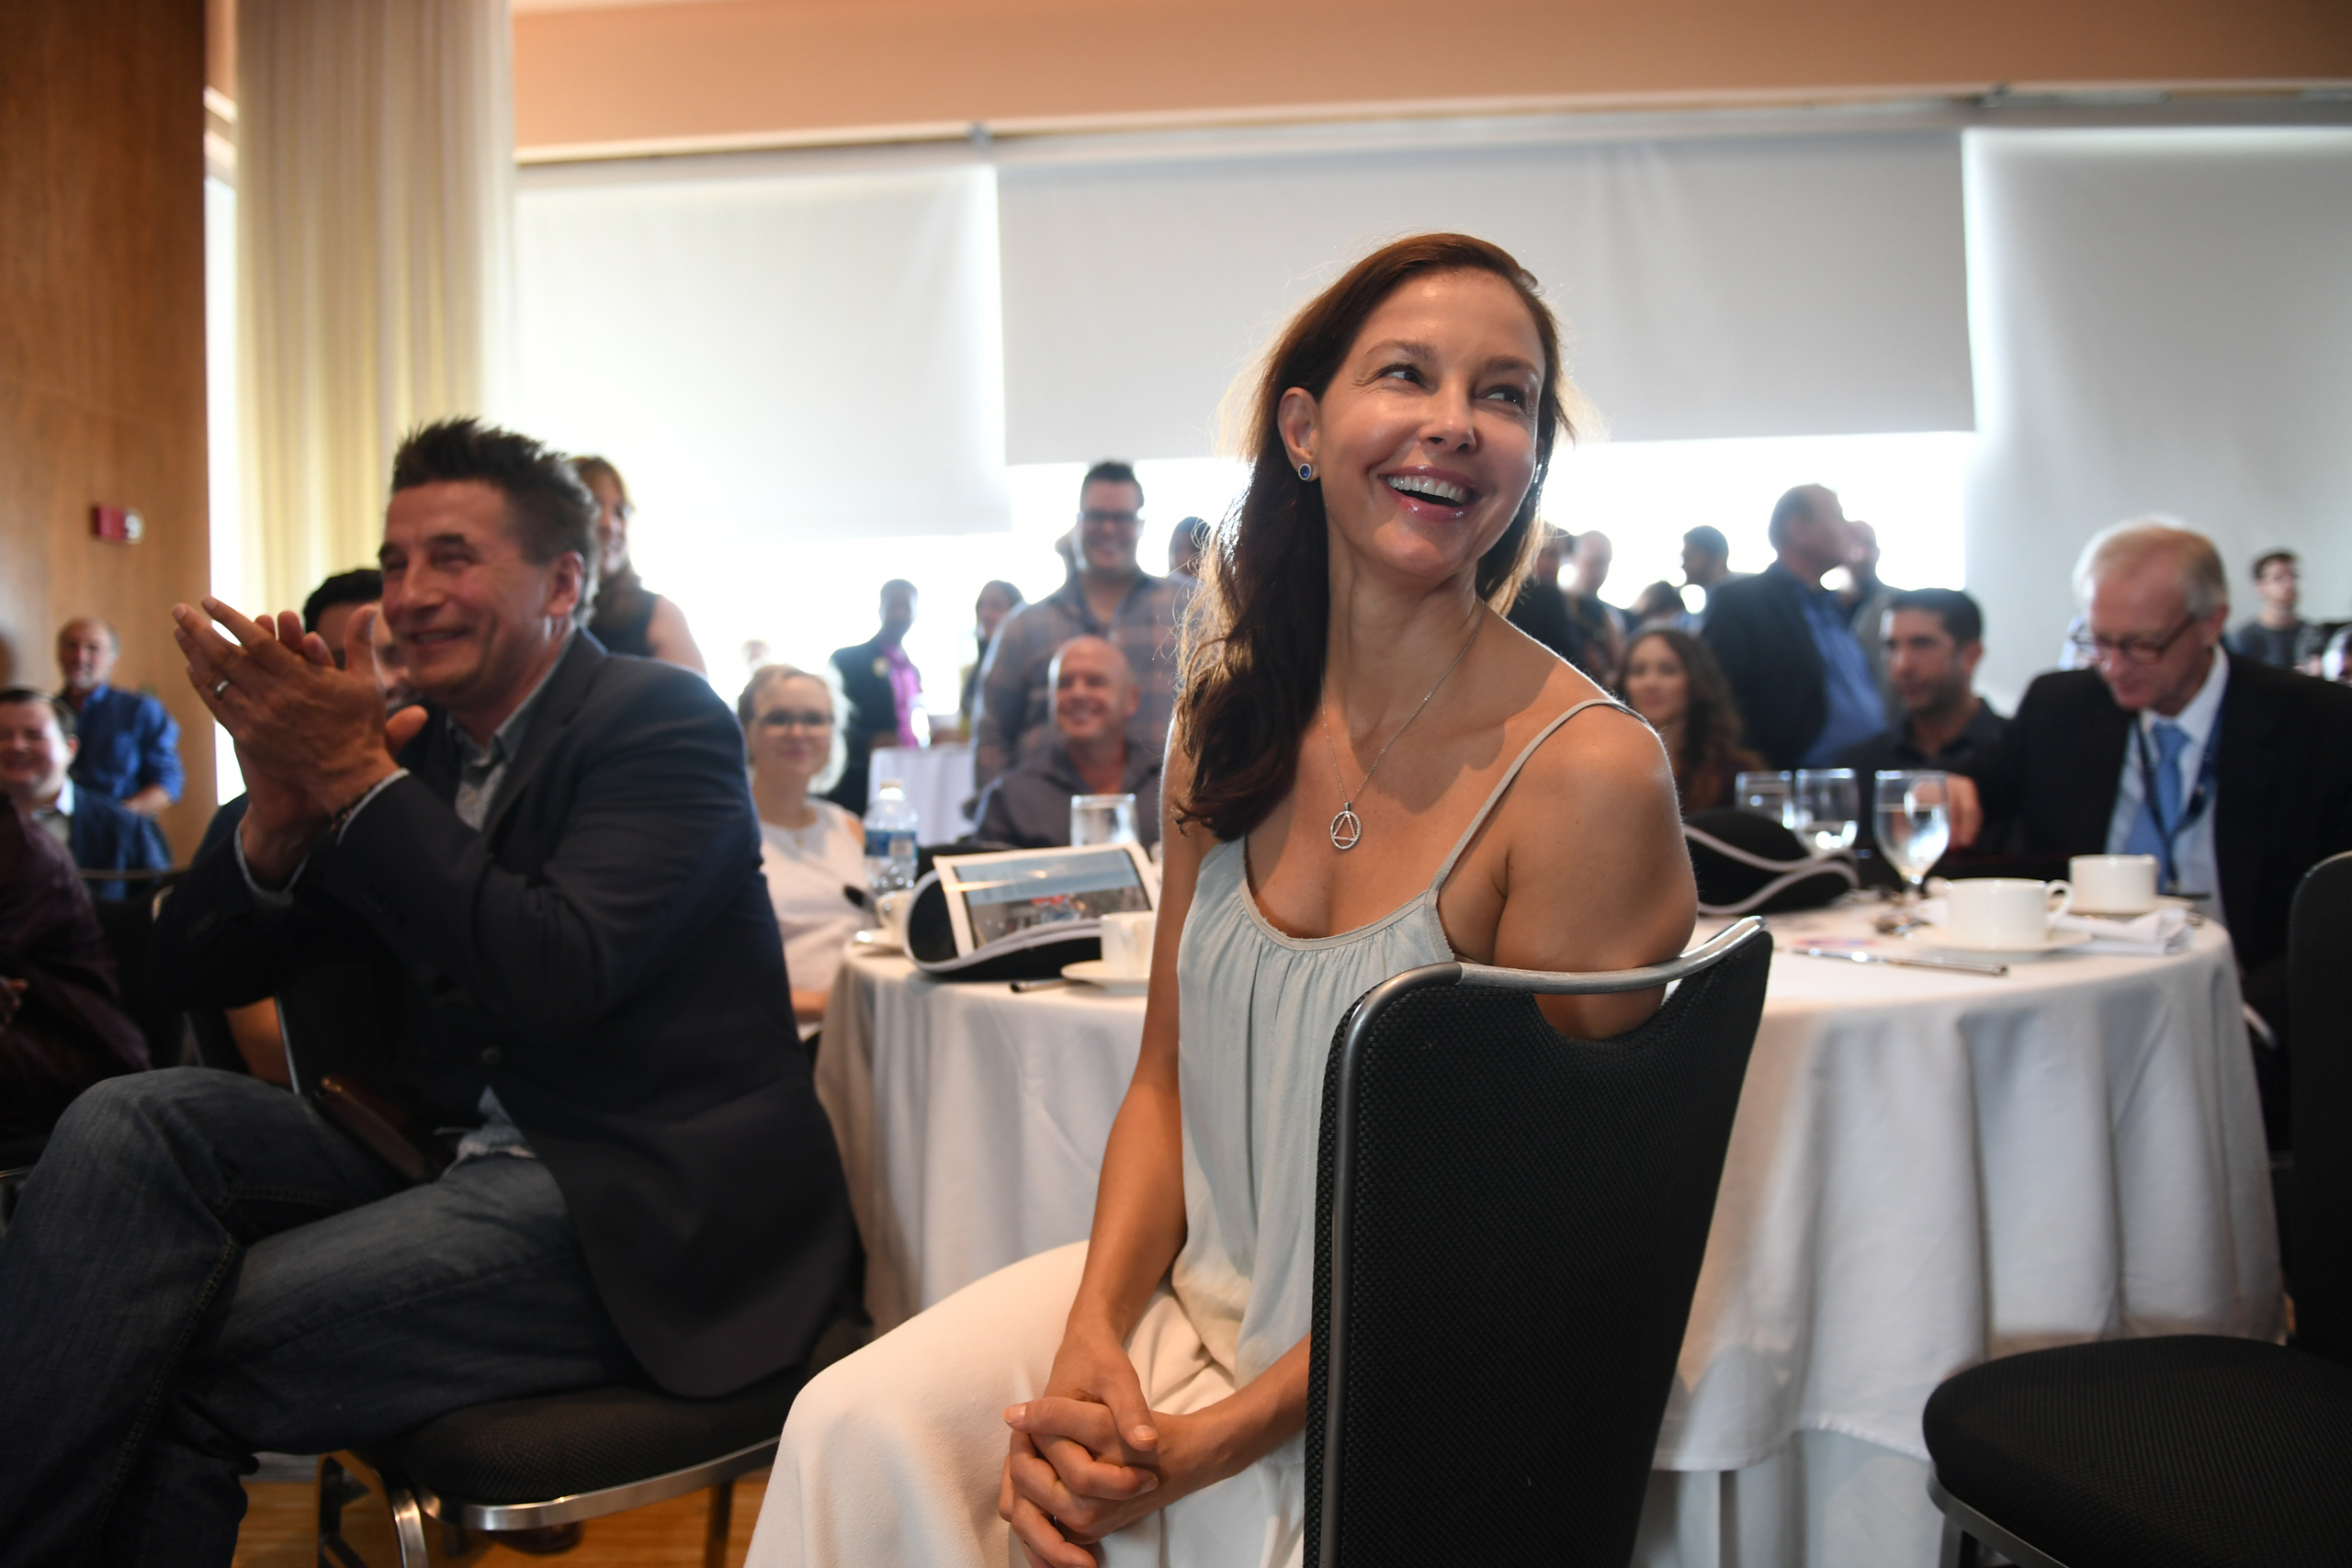 Actress Ashley Judd, a member of The Creative Coalition, greets people at a DC statehood and voting rights luncheon at the Loews Philadelphia Hotel during the second day of the Democratic National Convention in Philadelphia on July 26, 2016.